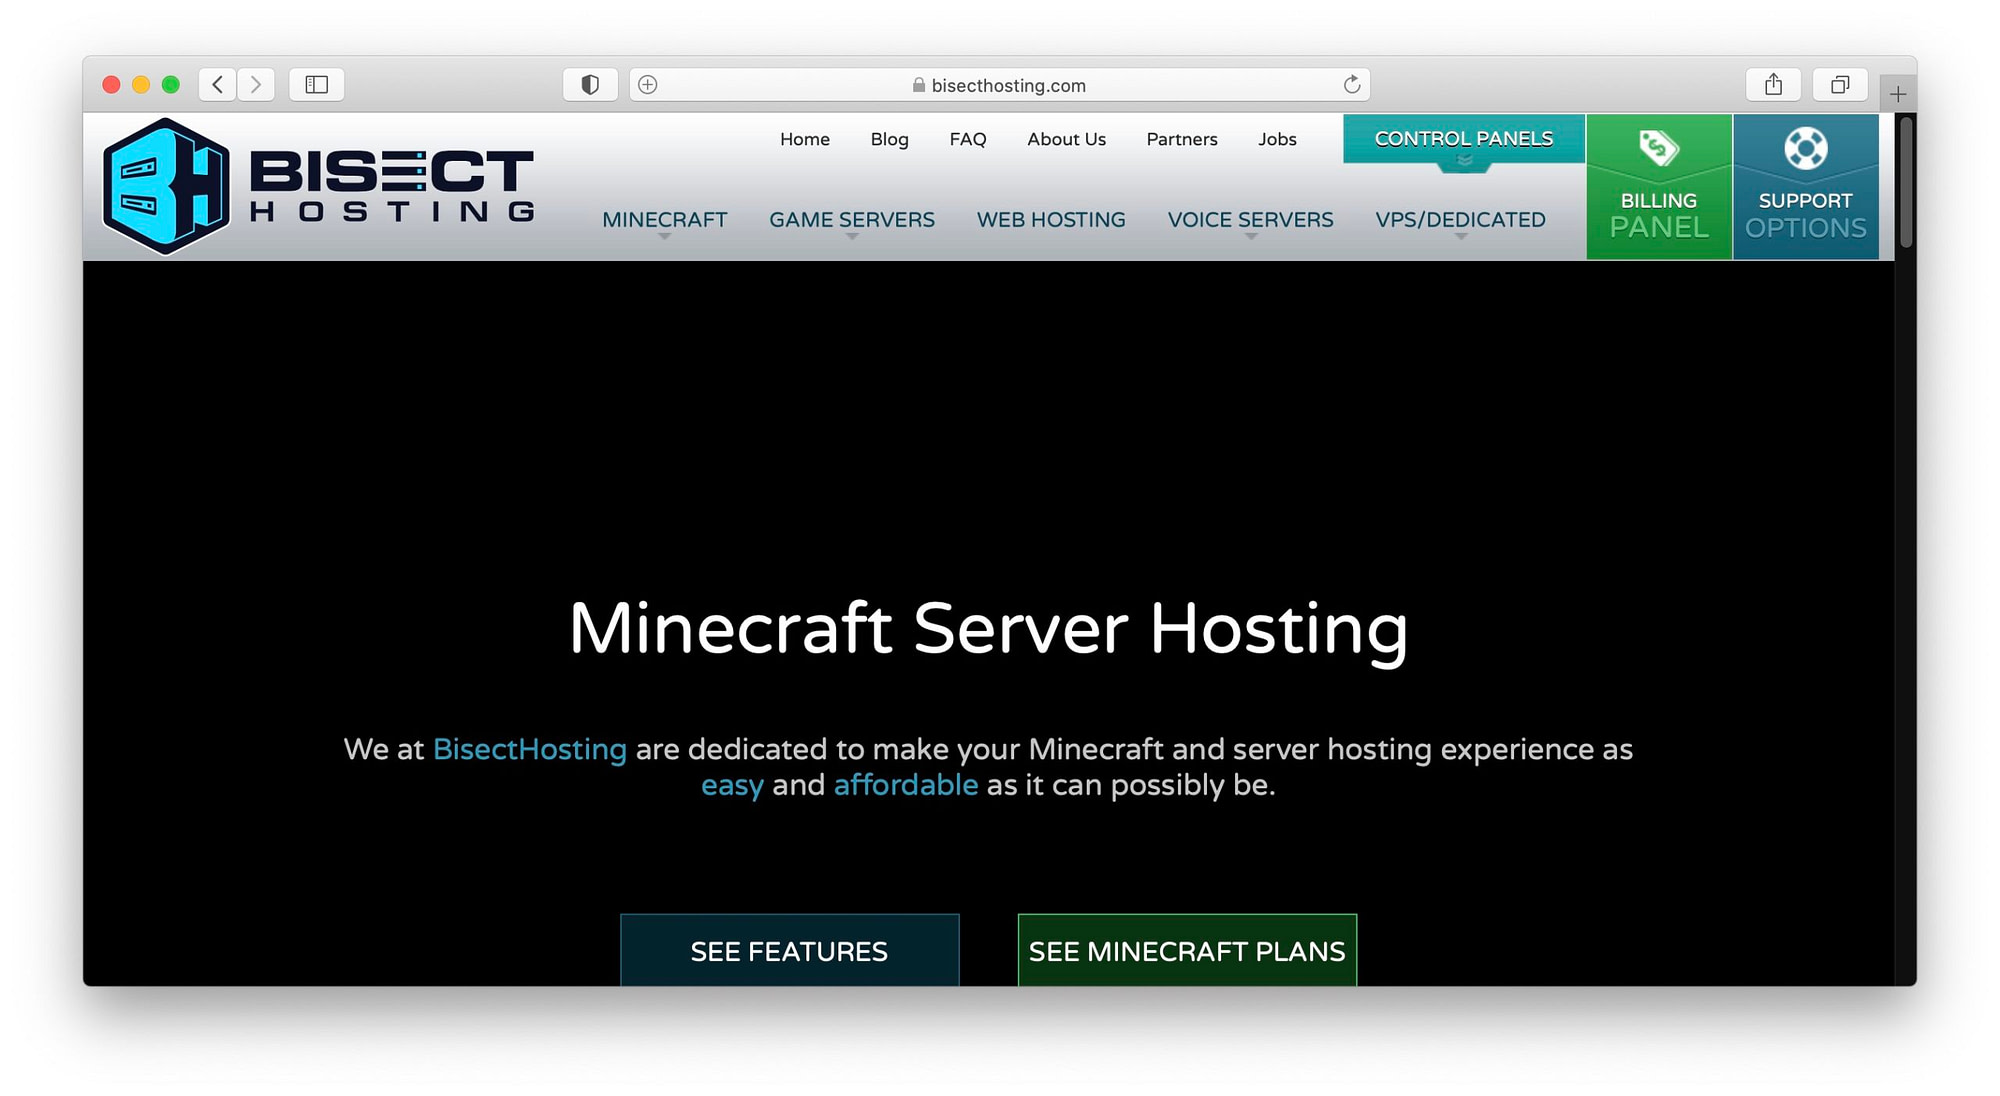 Bisect Hosting Minecraft plans.